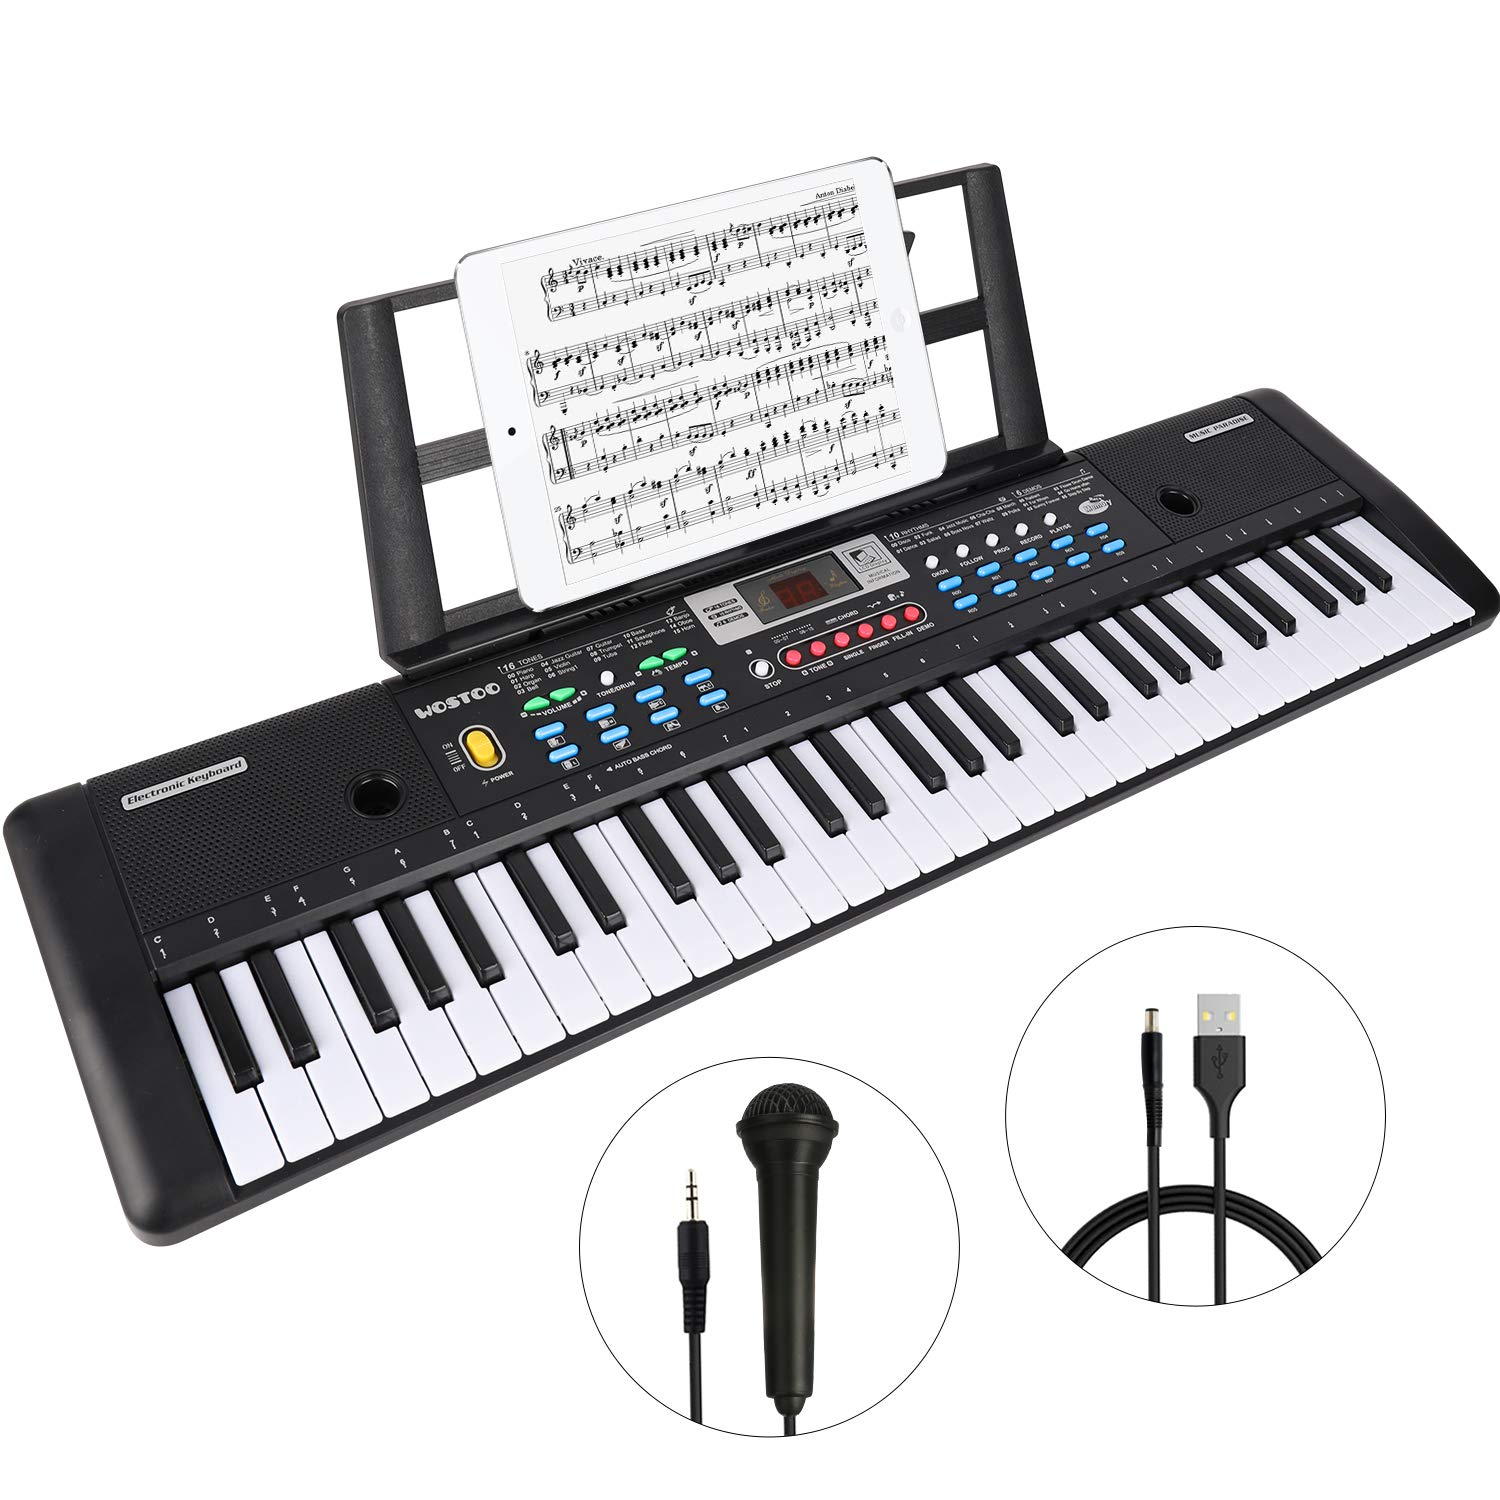 WOSTOO Keyboard Piano, 61 Key Portable Keyboard with Built- In Speaker, Microphone, Piano Stand, Power Supply Teaching Toy Gift for Kids Boy Girl by WOSTOO